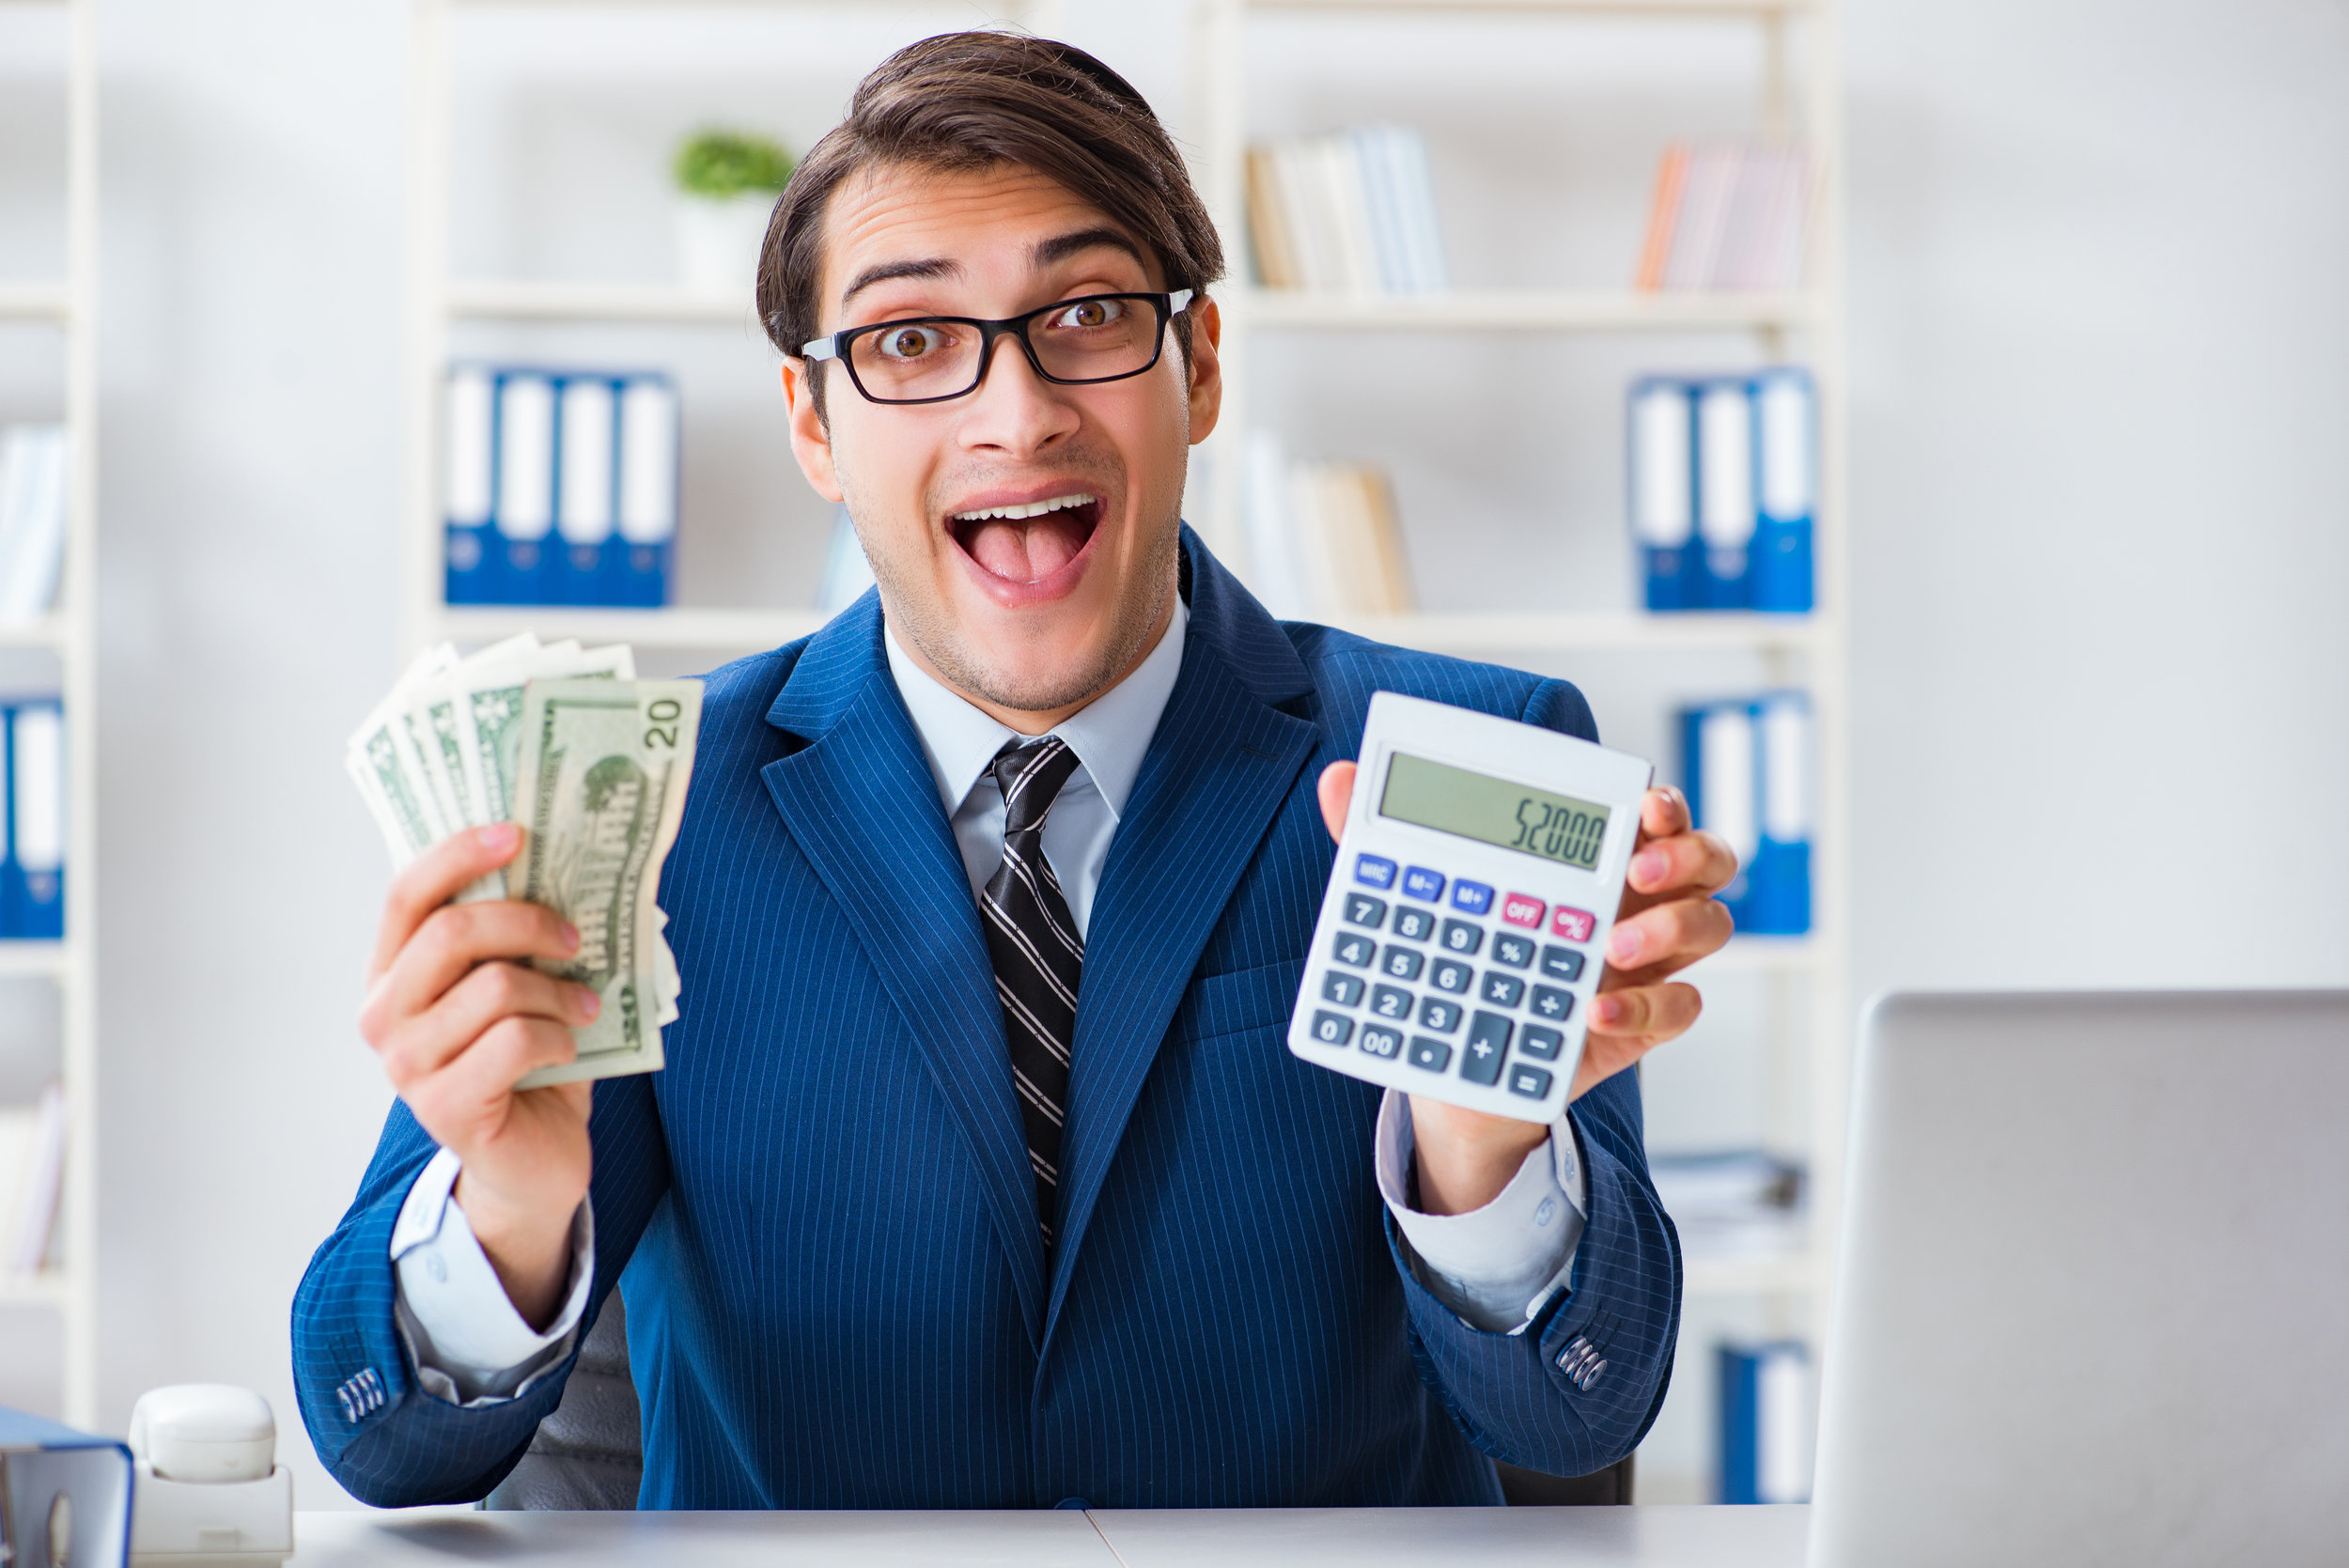 How Much Does a Freight Broker Make?